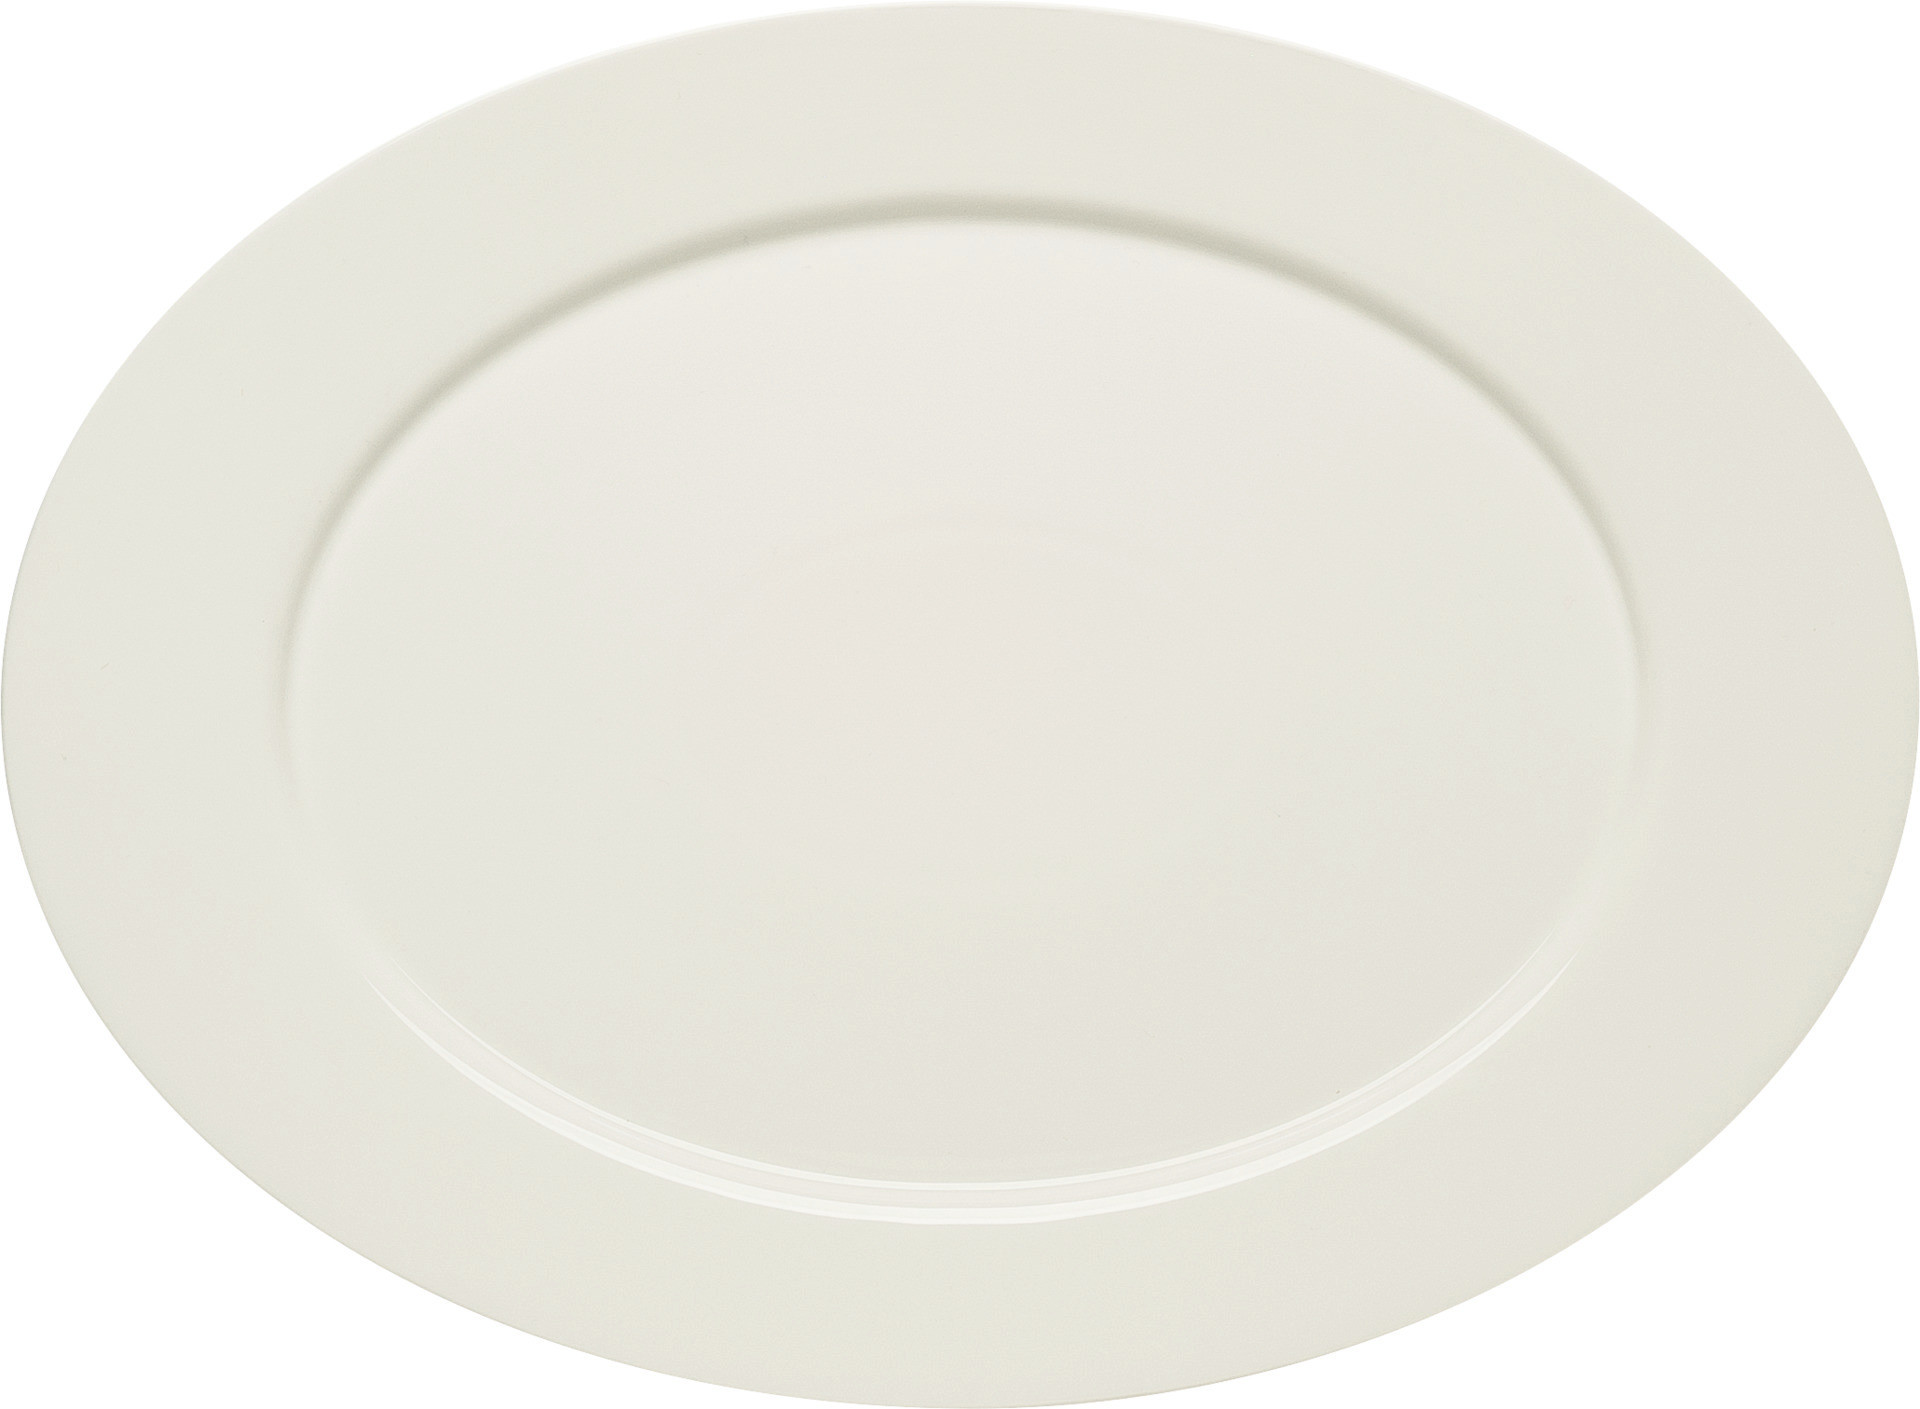 Purity, Platte oval mit Fahne 379 x 278 mm